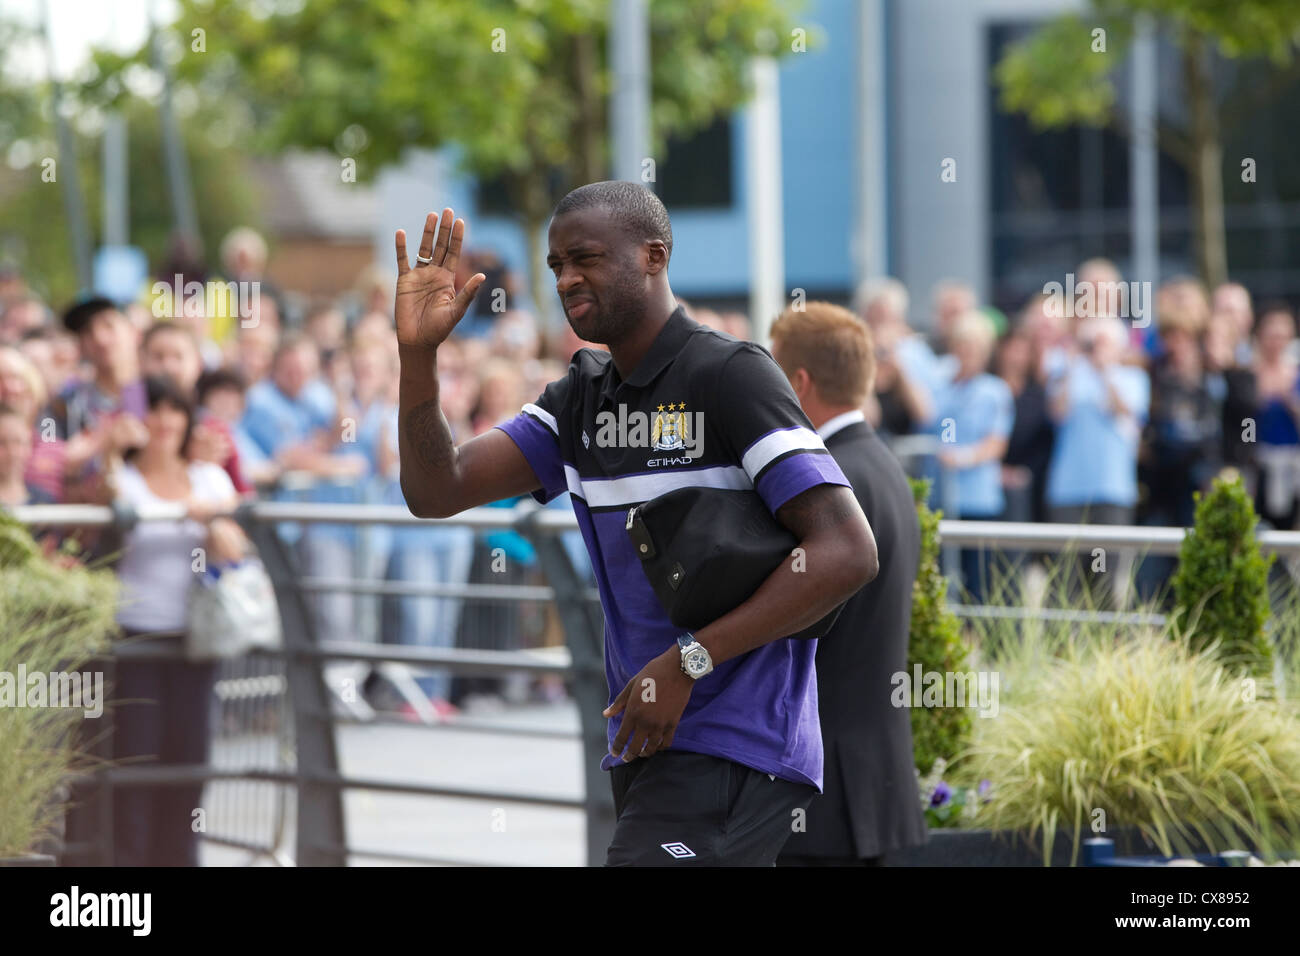 Yaya Toure footballer arriving at the Etihad Stadium, Manchester City Football Club, Manchester, England, United - Stock Image